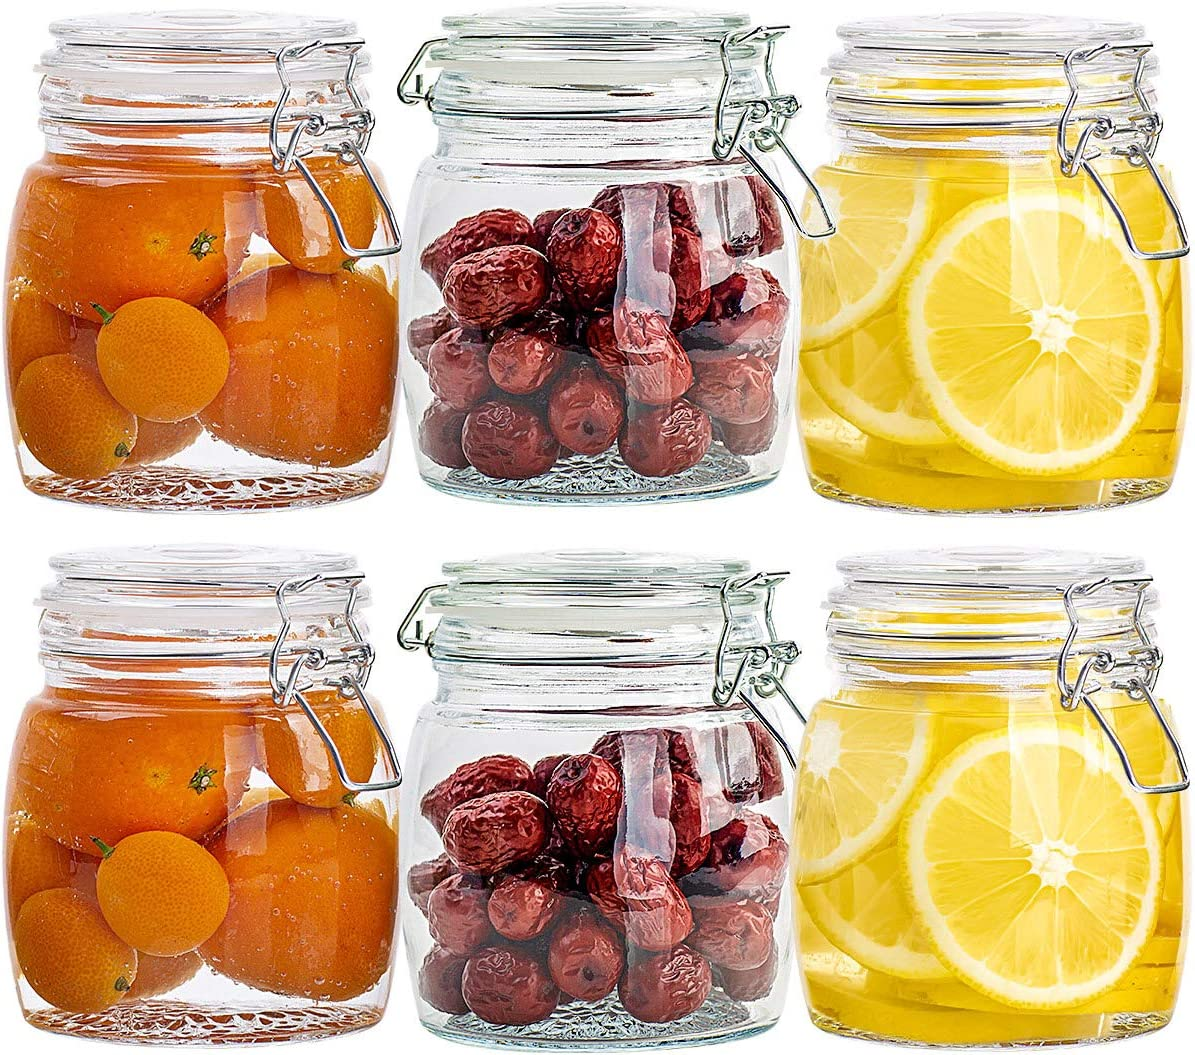 25Oz Glass Jars 6 Pack, Glass Canisters With Leak Proof Hinged Lids Airtight, Regular Mouth Food Storage Containers For Cereal, Pasta, Sugar, Beans